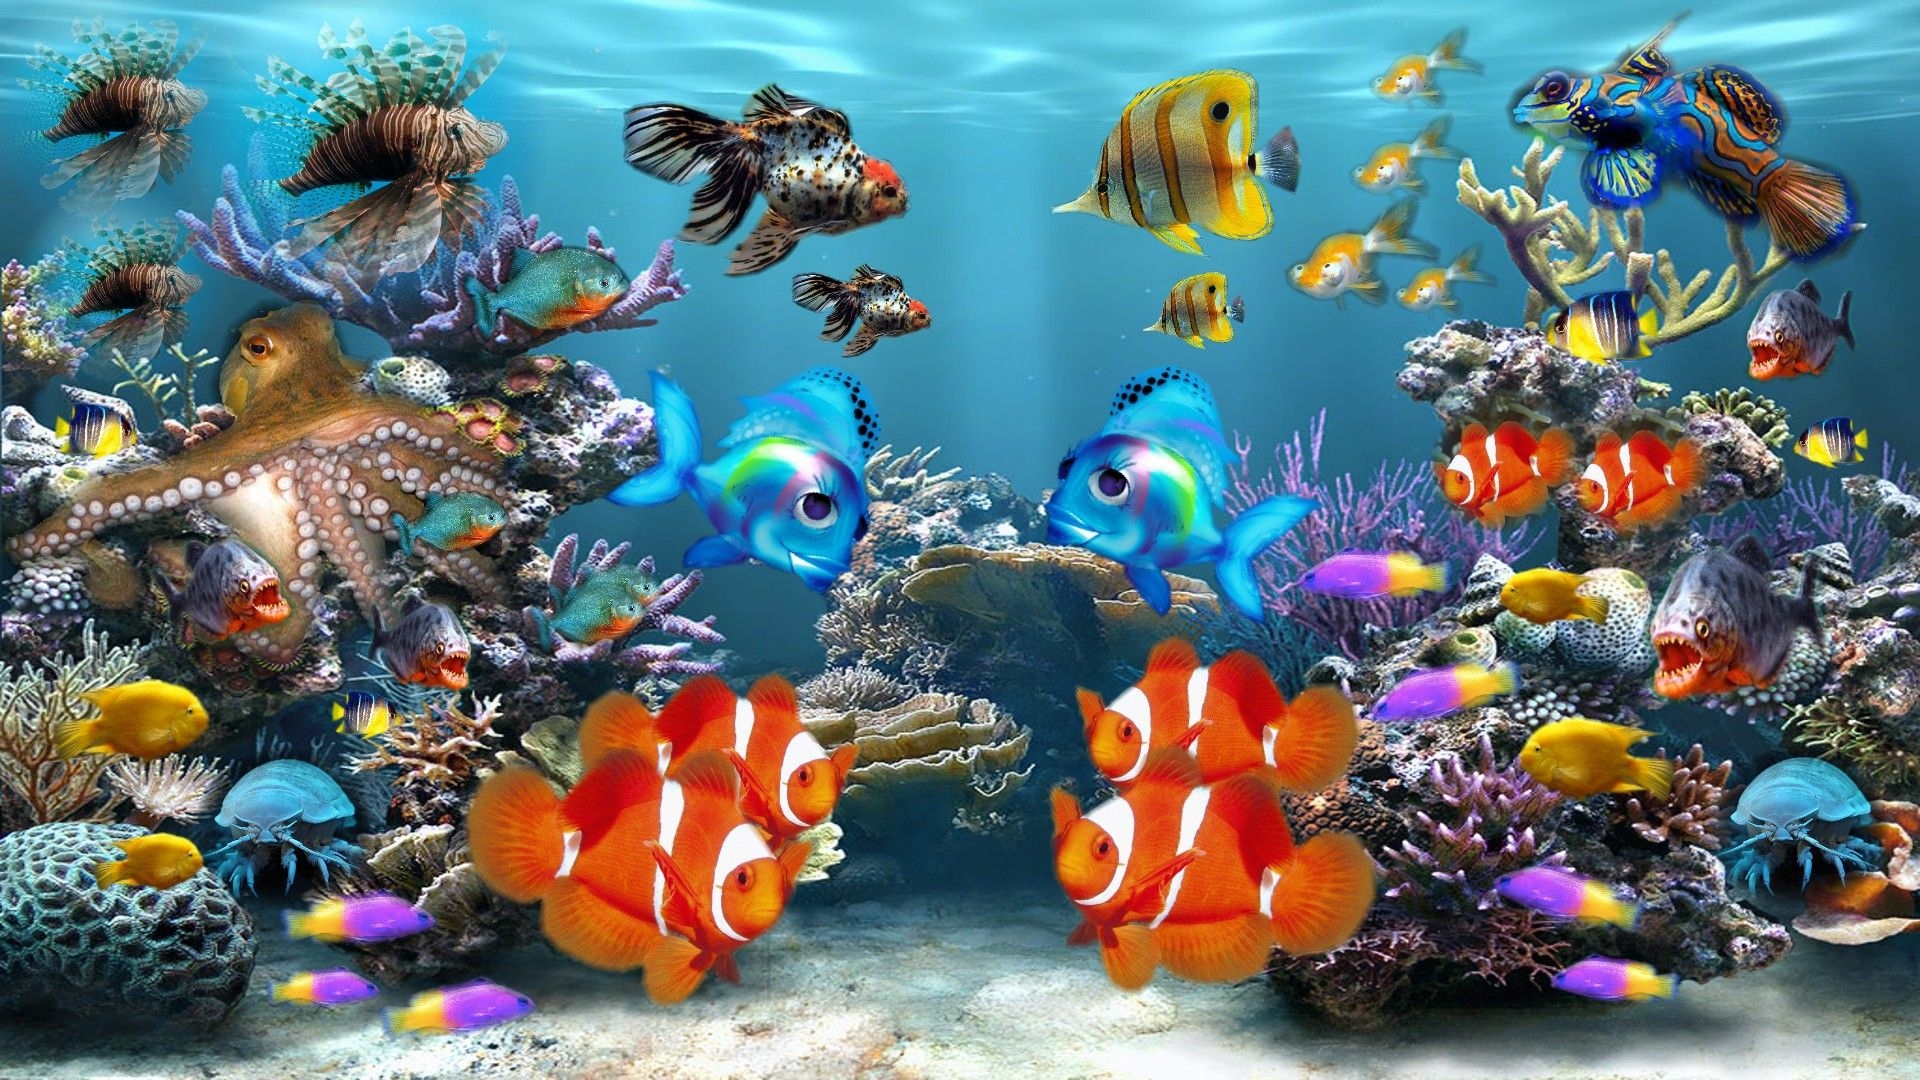 Fish tank moving desktop backgrounds aquarium colors for Desktop fish tank